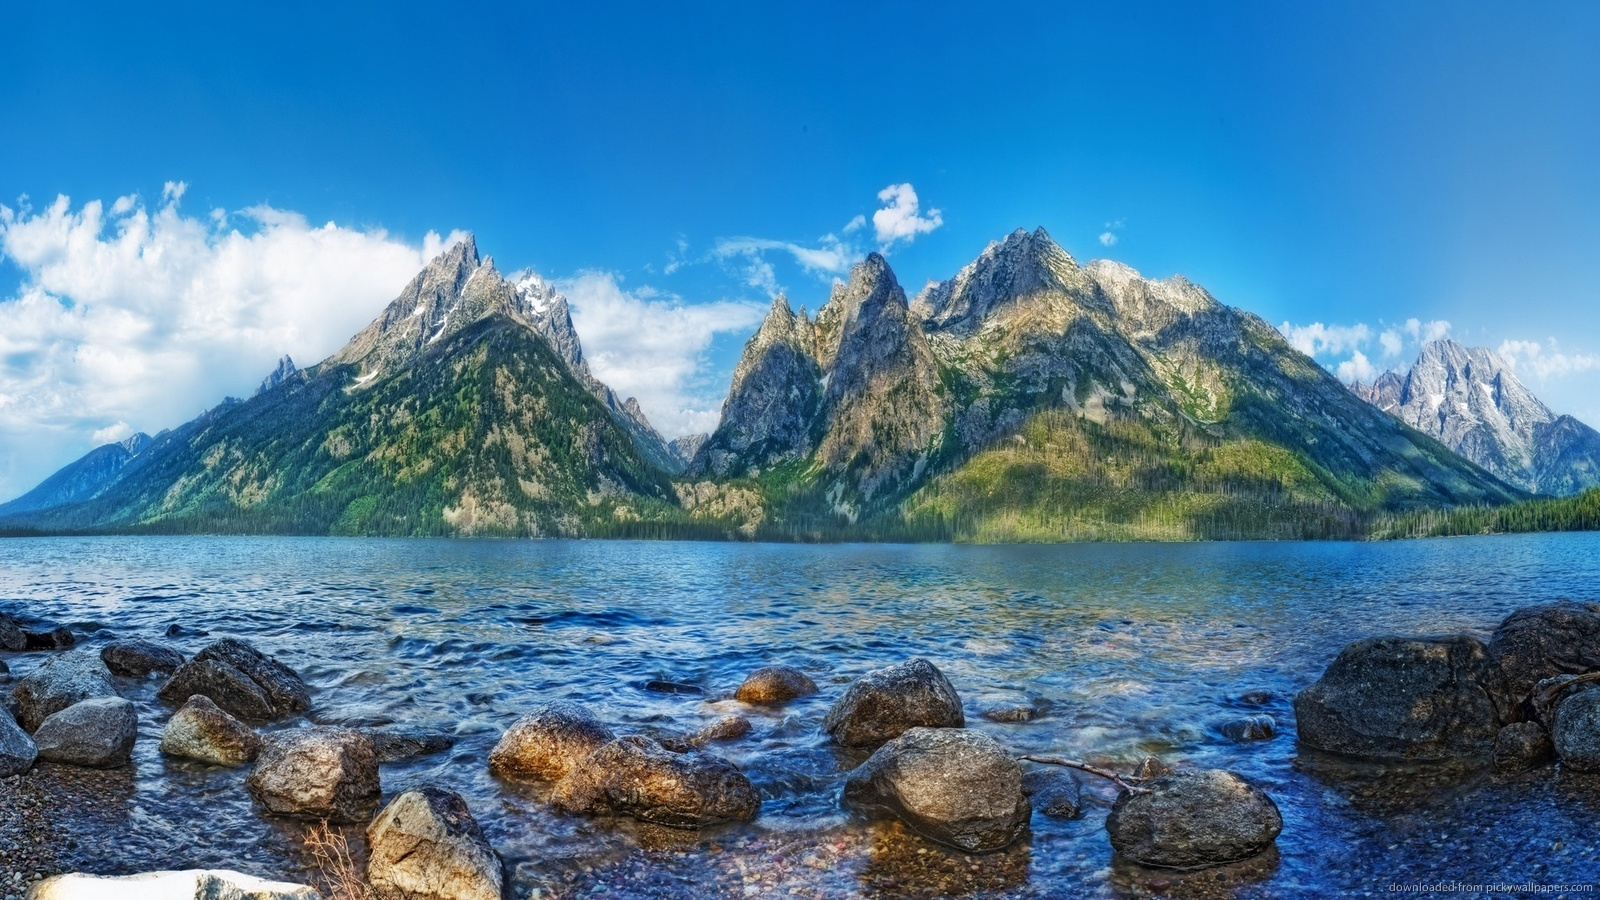 http://www.destination360.com/north-america/us/wyoming/grand-teton-national-park